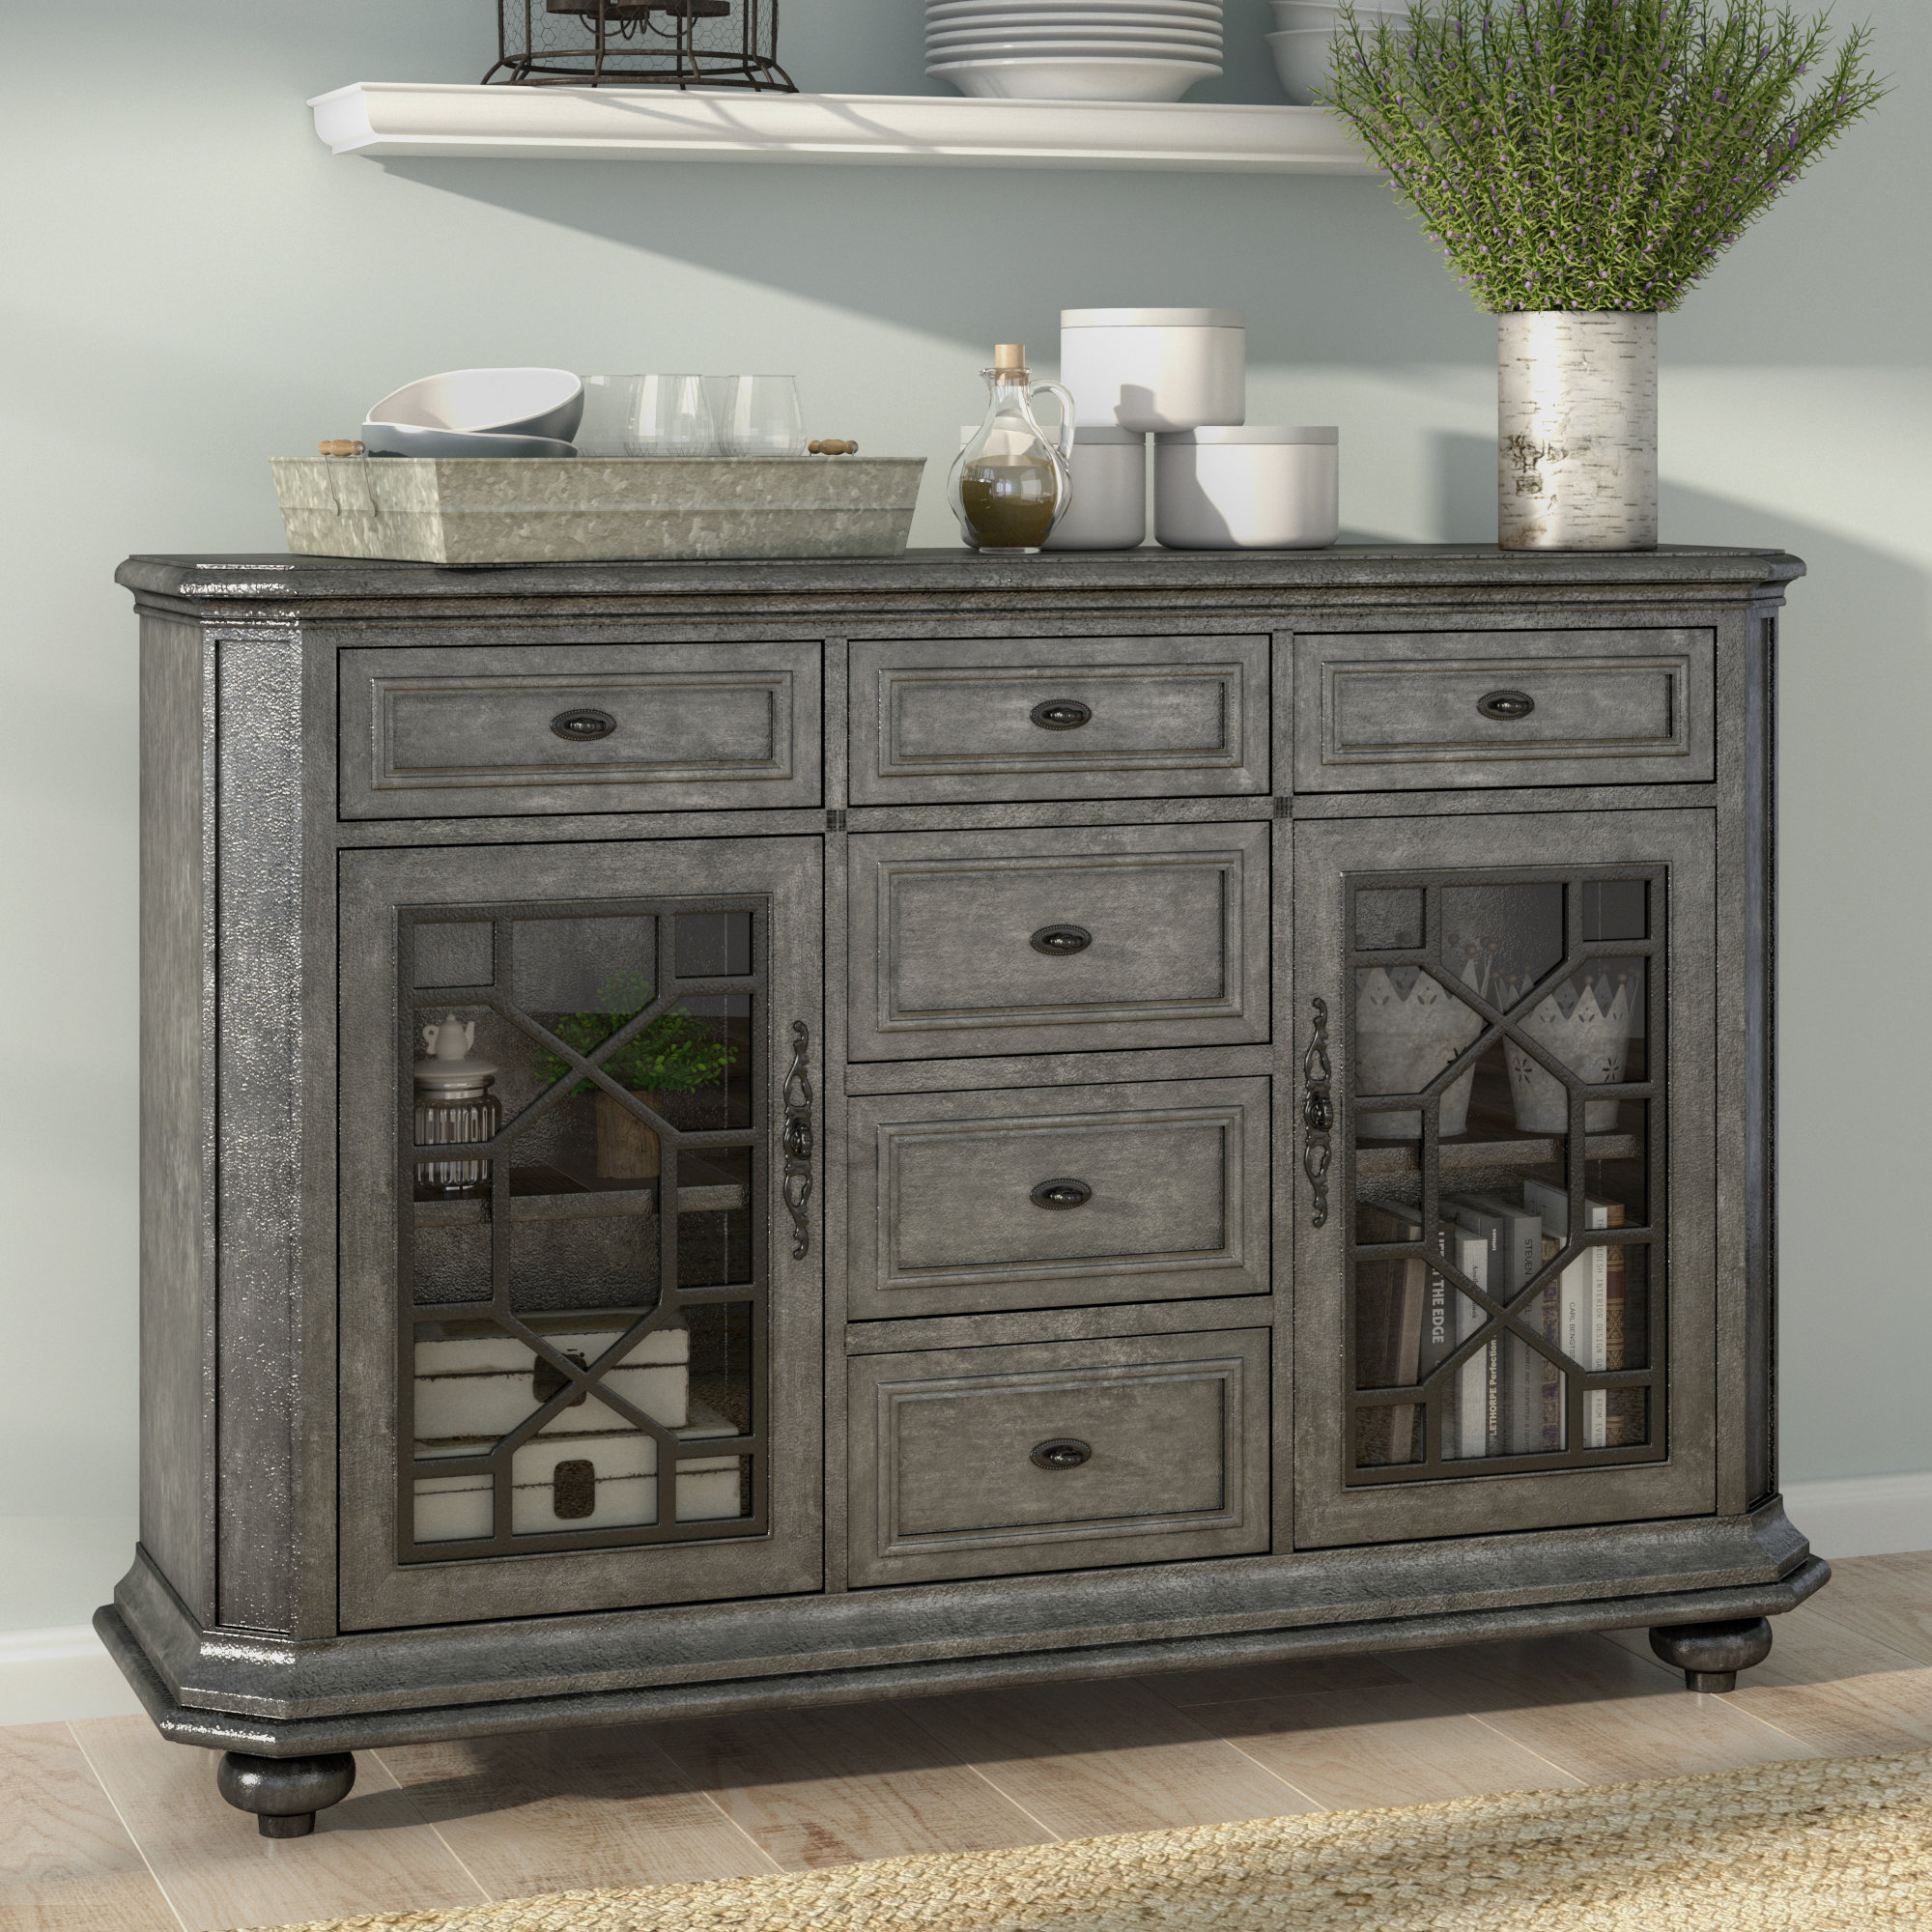 Eclectic Sideboards & Buffets | Birch Lane Within Latest Steinhatchee Reclaimed Pine 4 Door Sideboards (#10 of 20)